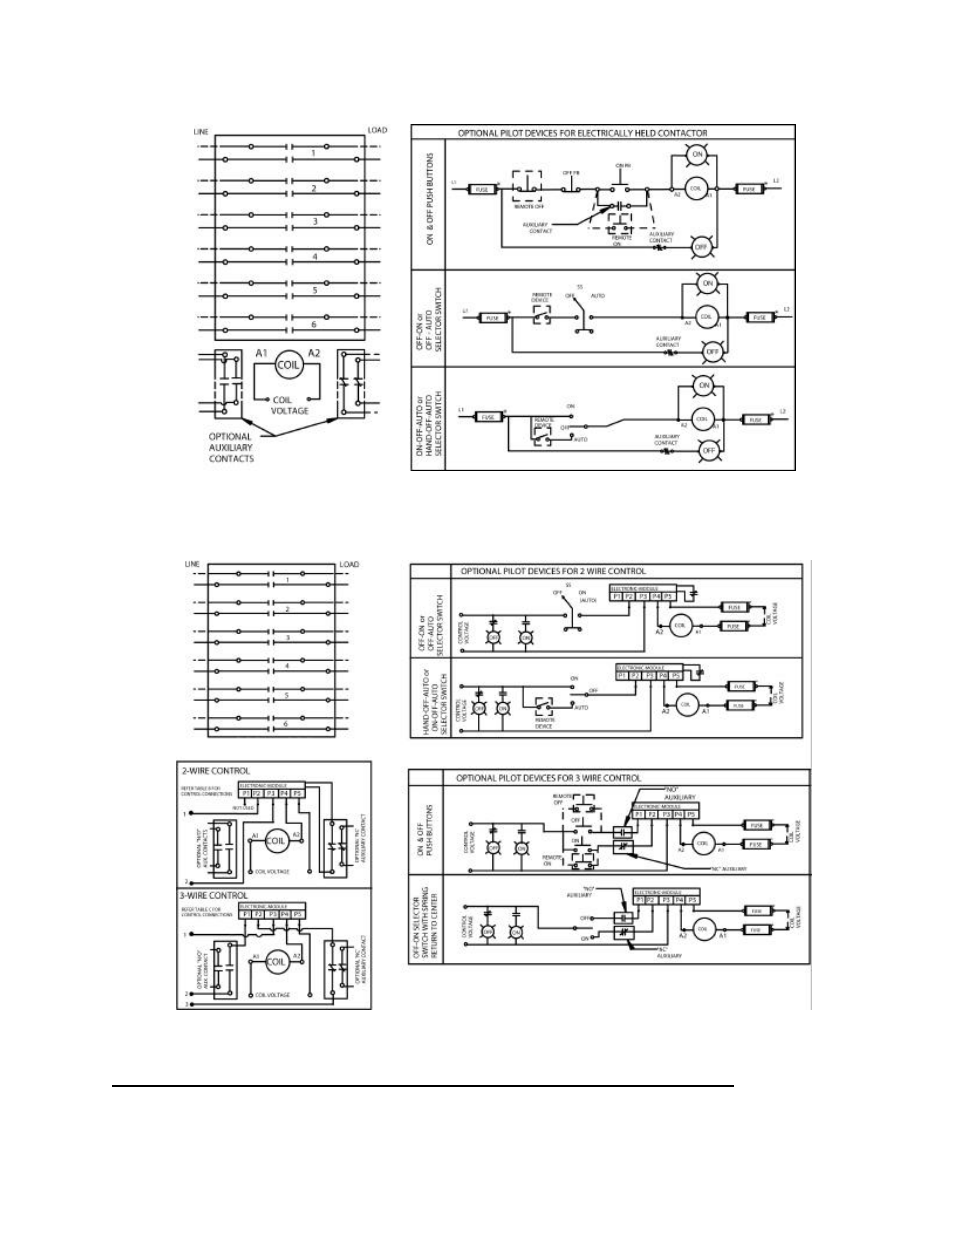 ge industrial solutions cr460 lighting contactor series page4?resize\=665%2C861 wiring diagram for 9070k100d18 wiring wiring diagrams collection  at soozxer.org